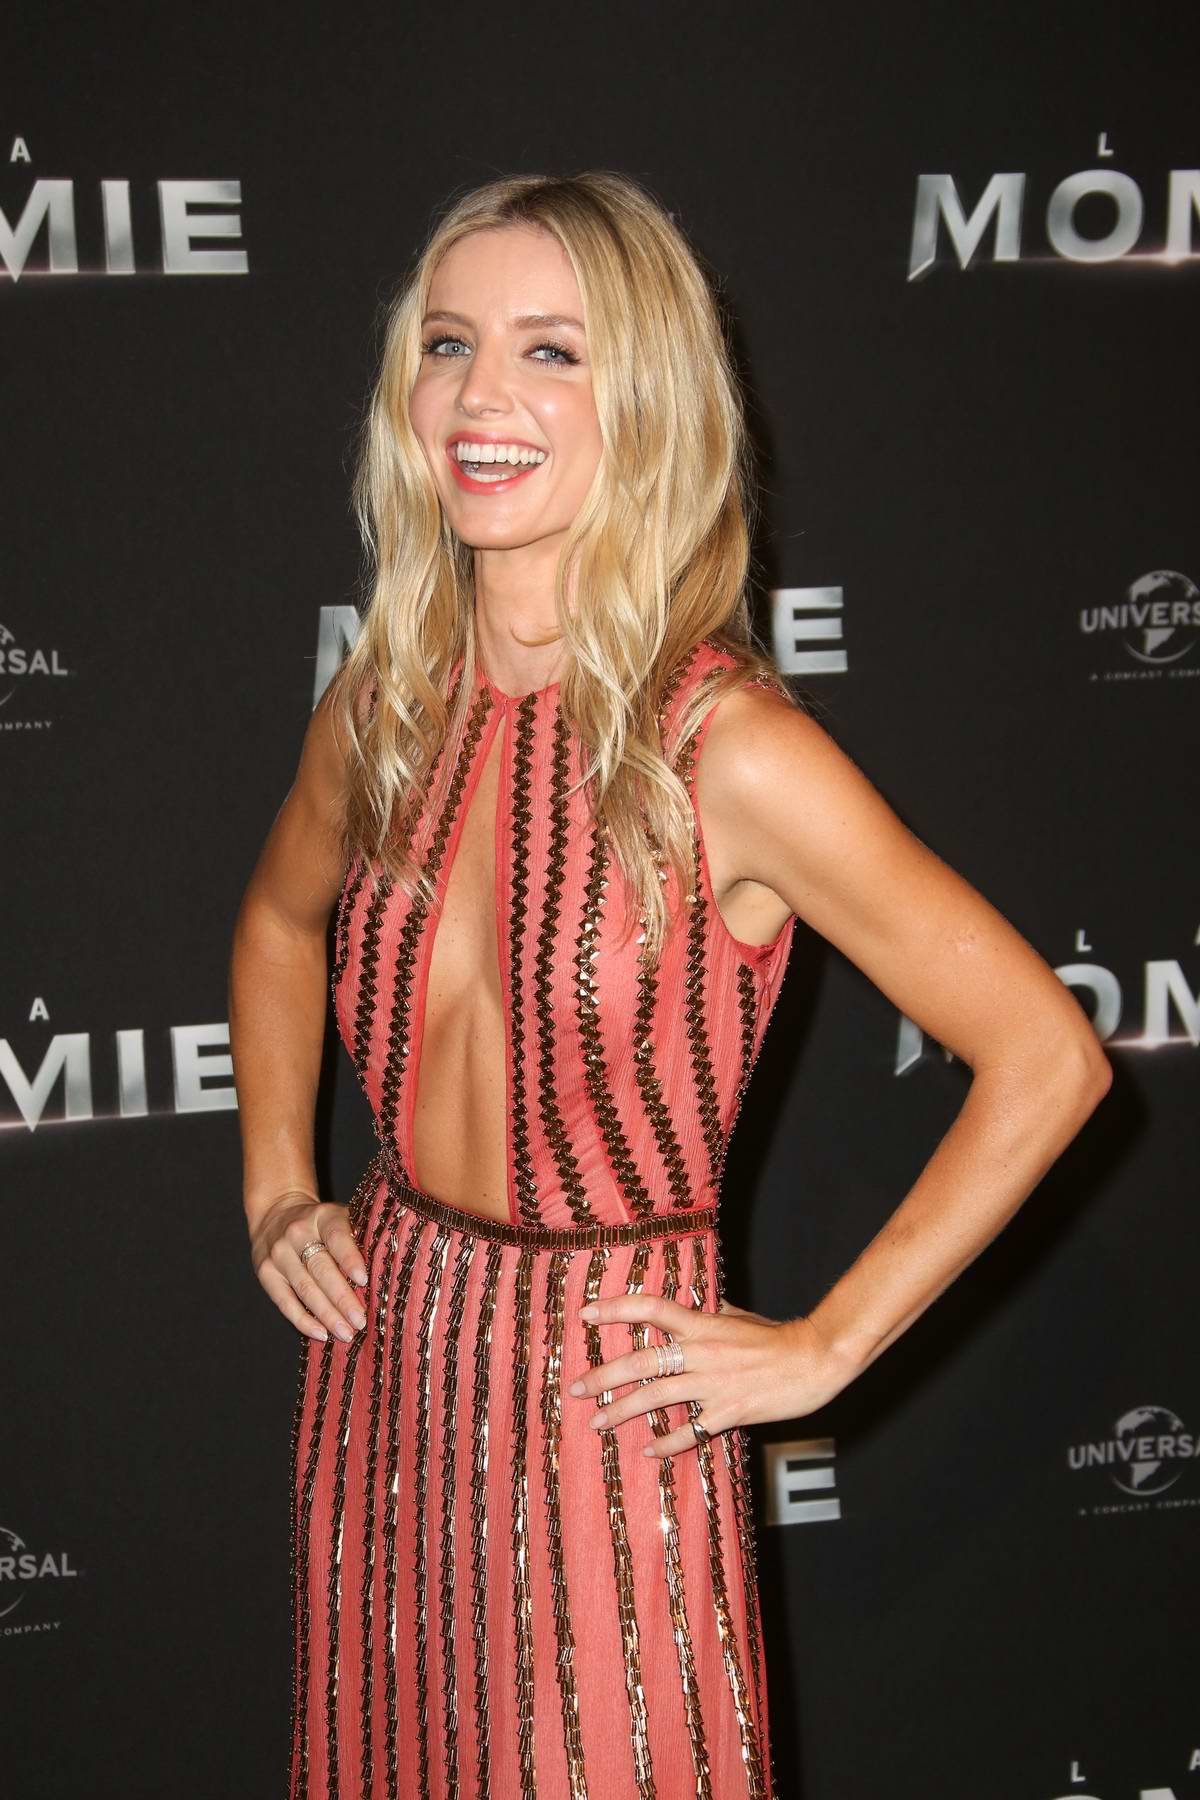 Annabelle Wallis nudes (18 pictures), video Erotica, Twitter, braless 2019